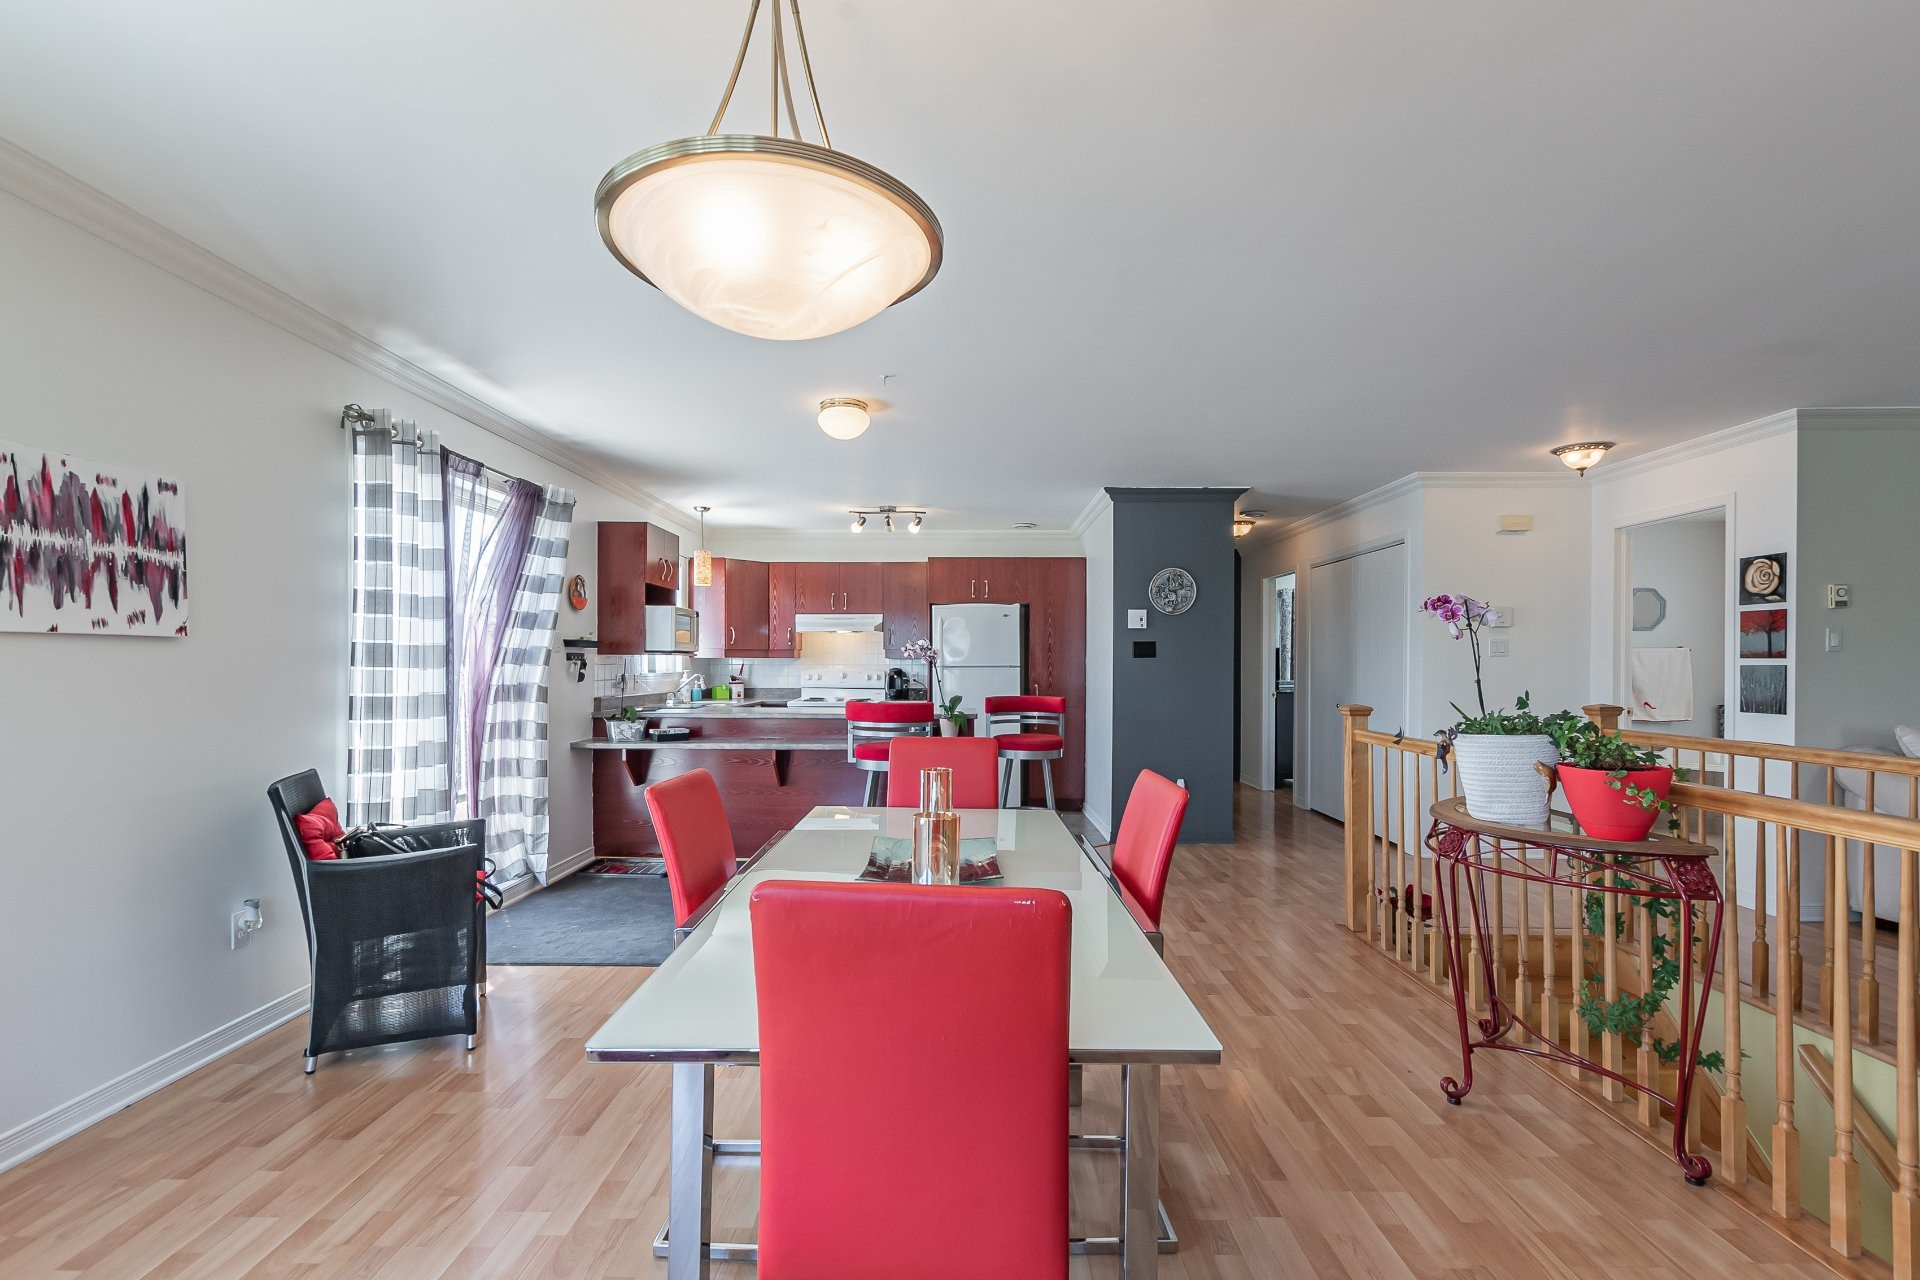 image 6 - Apartment For sale Sainte-Catherine - 5 rooms